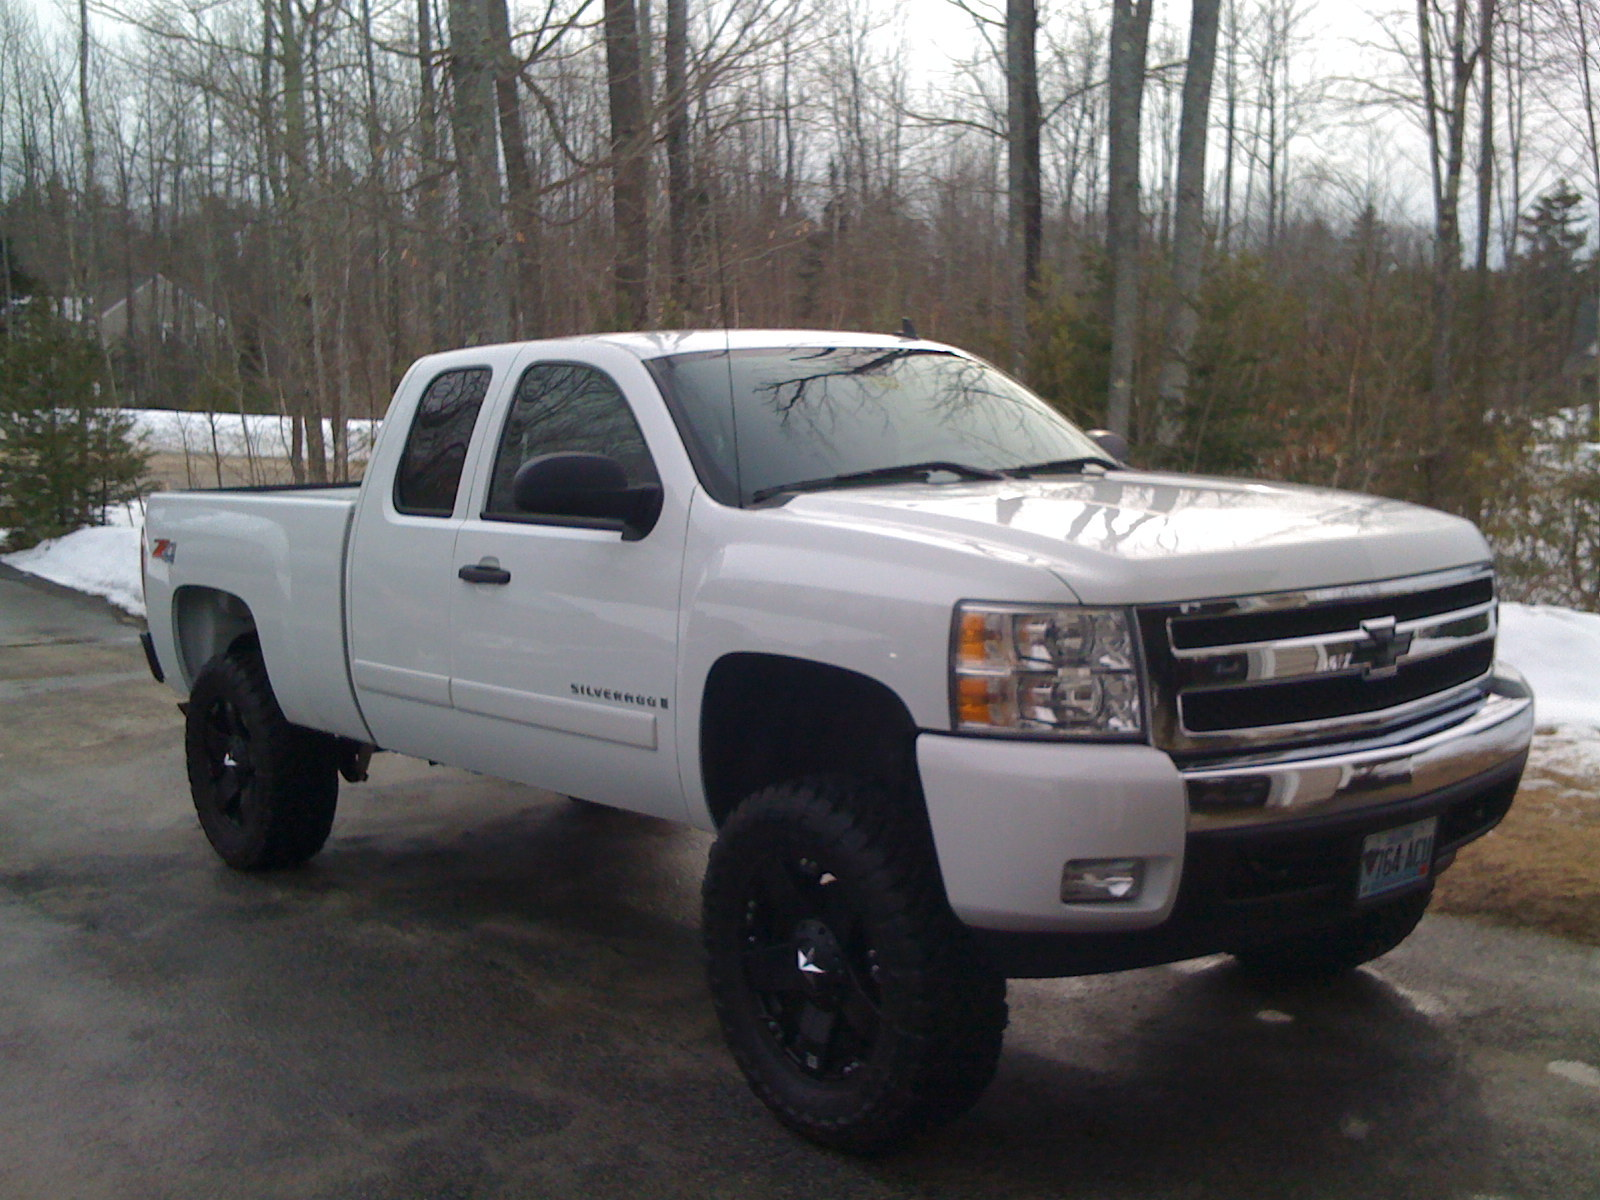 2008 Chevy Silverado Lifted >> Landers11889 2008 Chevrolet Silverado 1500 Regular Cab Specs Photos